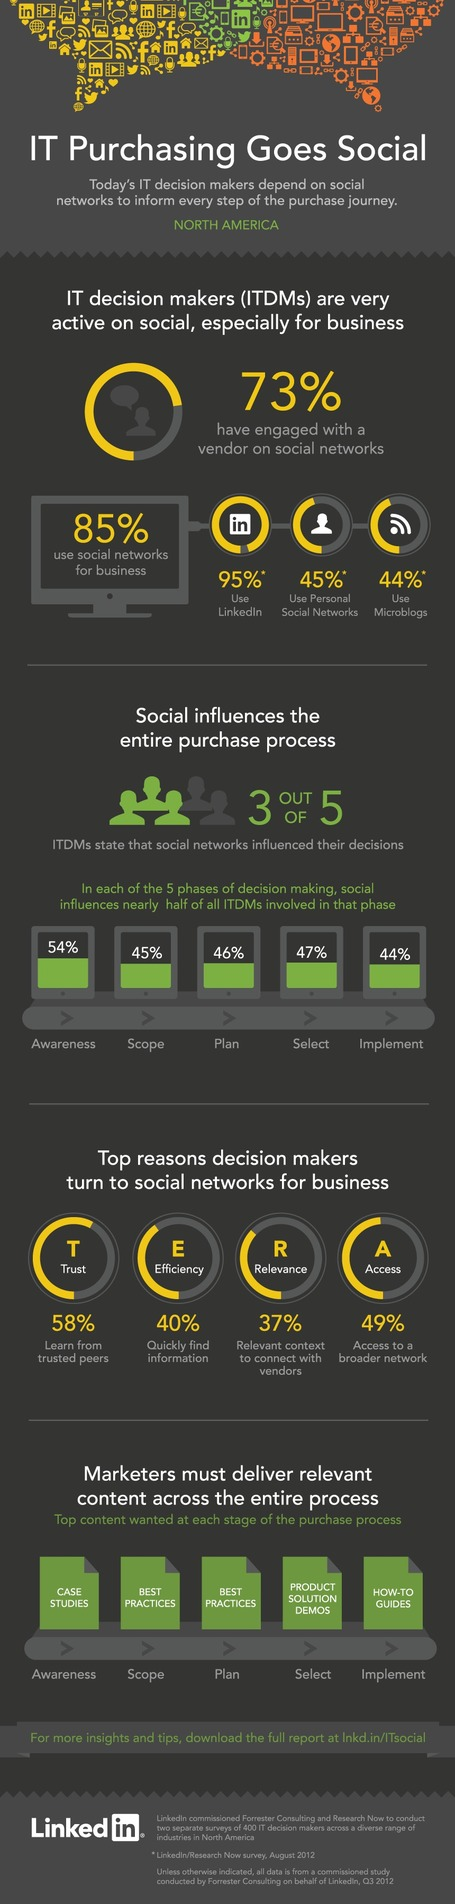 IT B2B: Why Social Media Should Be Your Biz Dev Friend [Infographic] | BI Revolution | Scoop.it